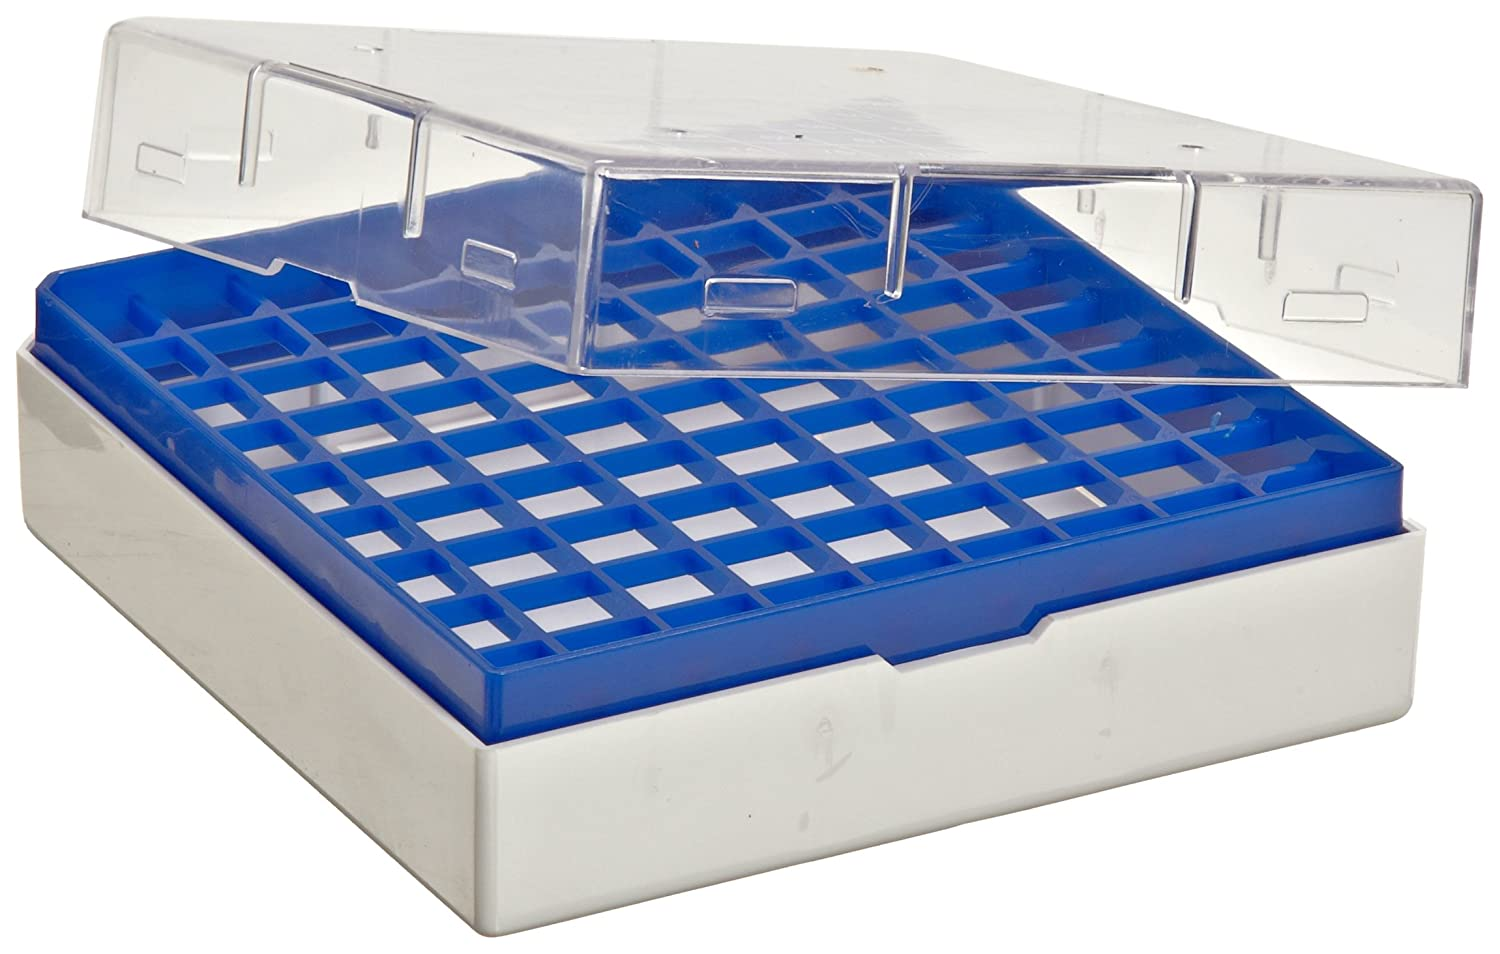 1.2-2.0ml Plastic Pack of 8 Bel-Art F18849-0000 Cryo-Safe Vial Storage Box; 25 Places 3 x 3 x 2 in.